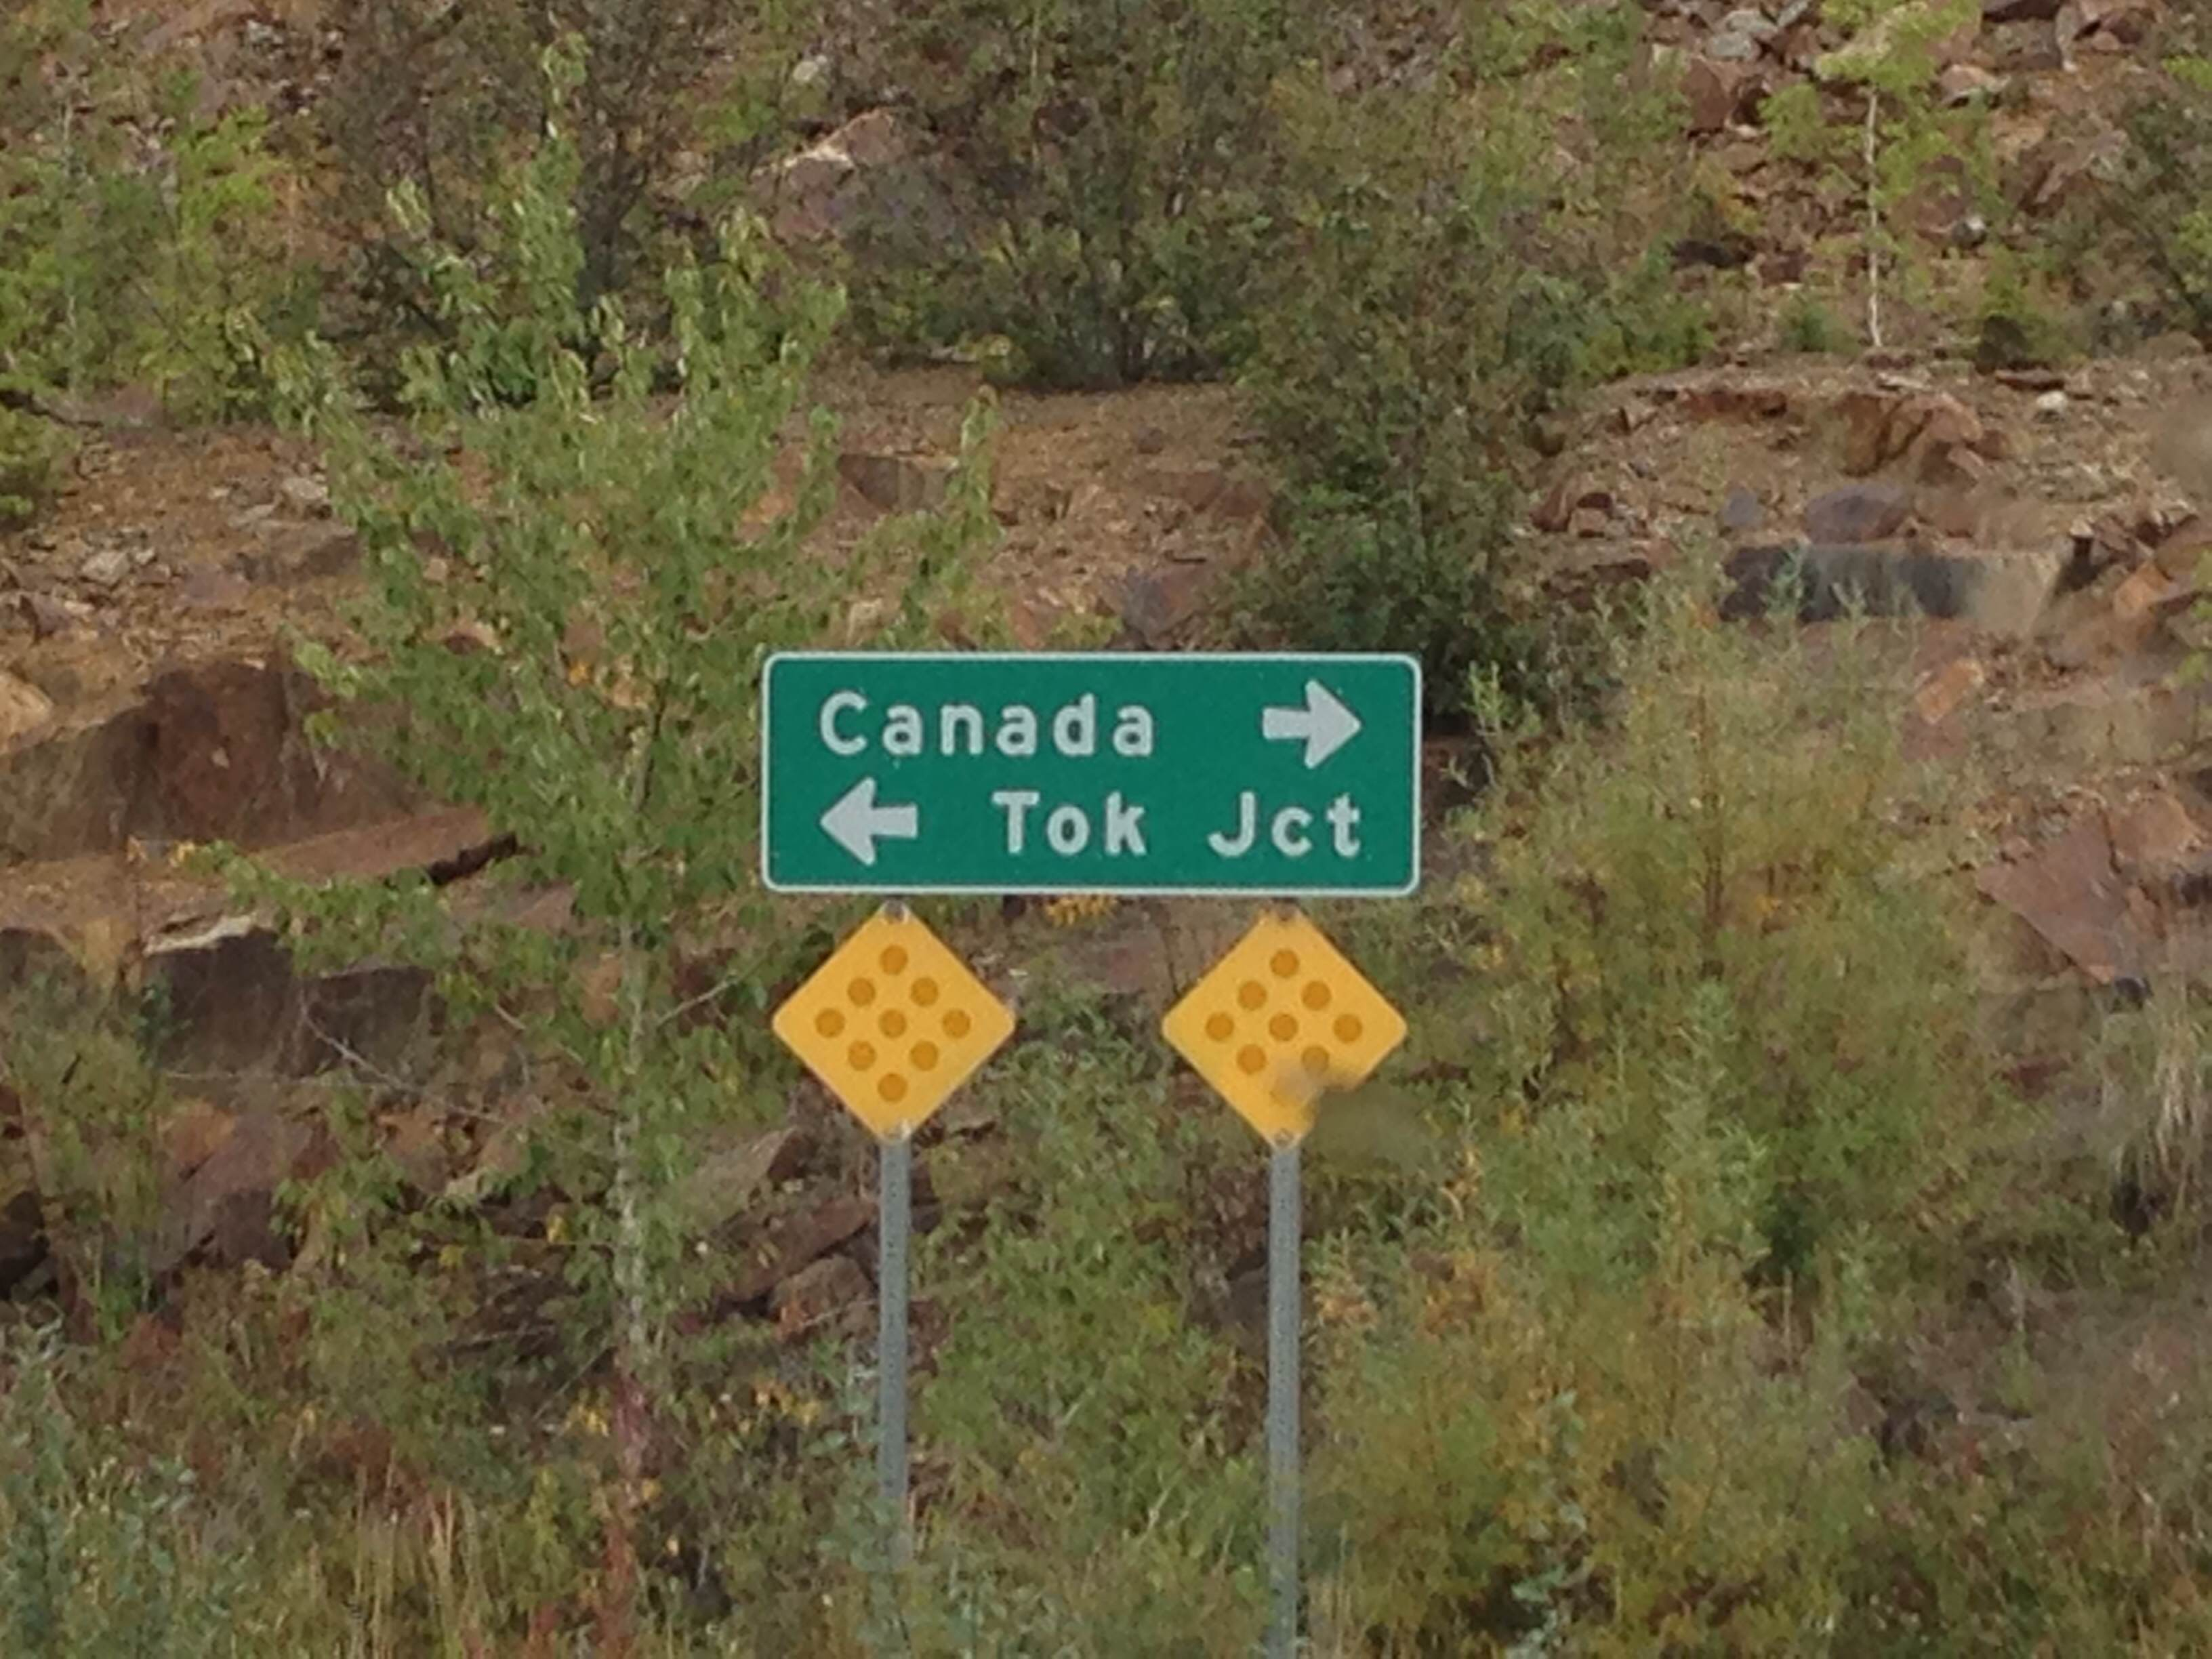 """This made me laugh. """"All of Canada - that way! Just Tok Junction - that way!"""""""